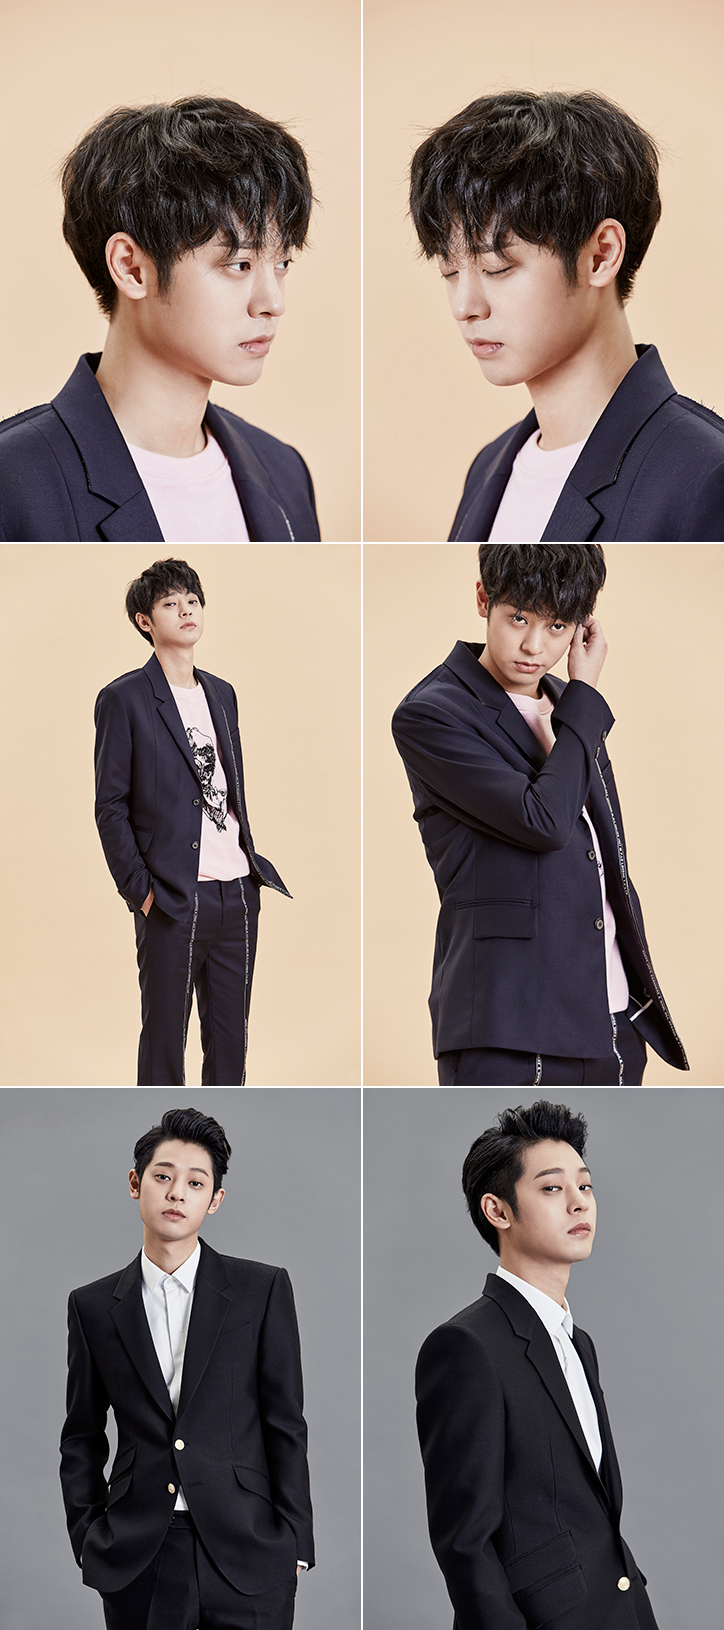 Jung Joon Young official photos of Sympathy promotional session in 2016